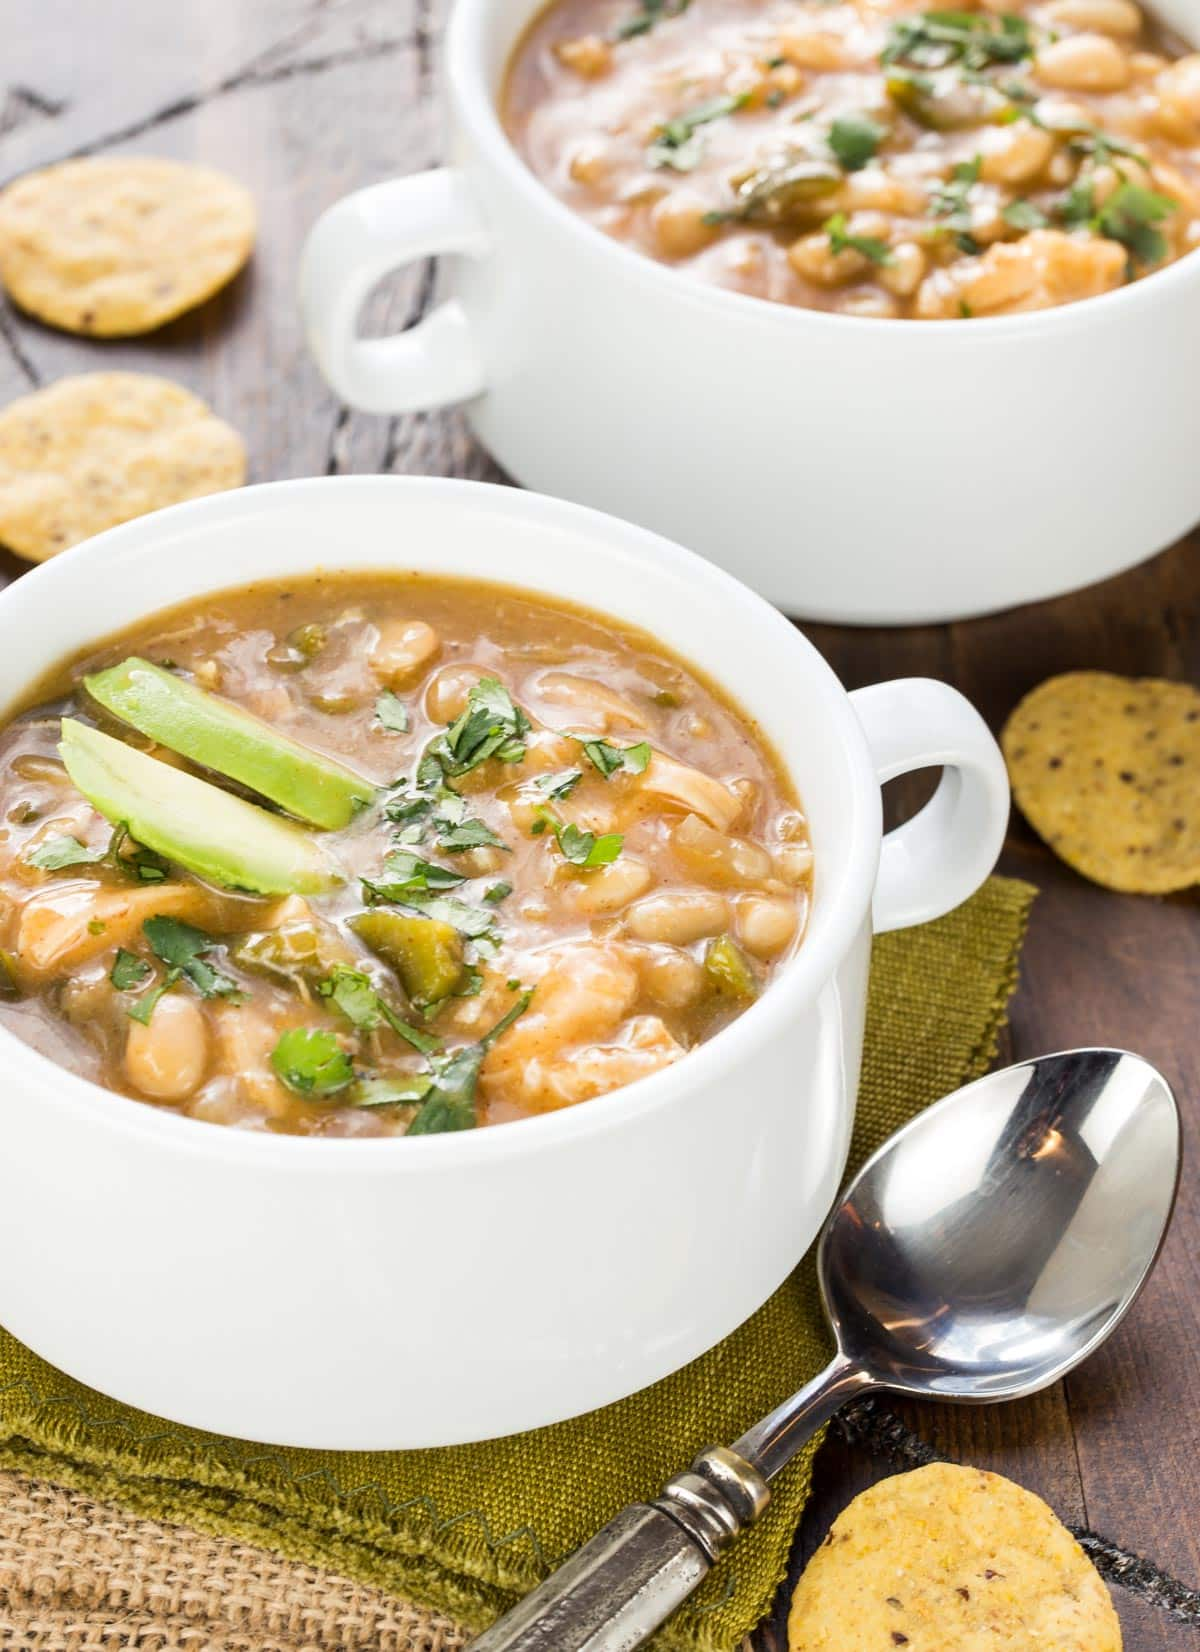 Filled with flavors of the southwest, this Slow Cooker White Chicken Chili recipe is a delicious addition to any winter gathering!